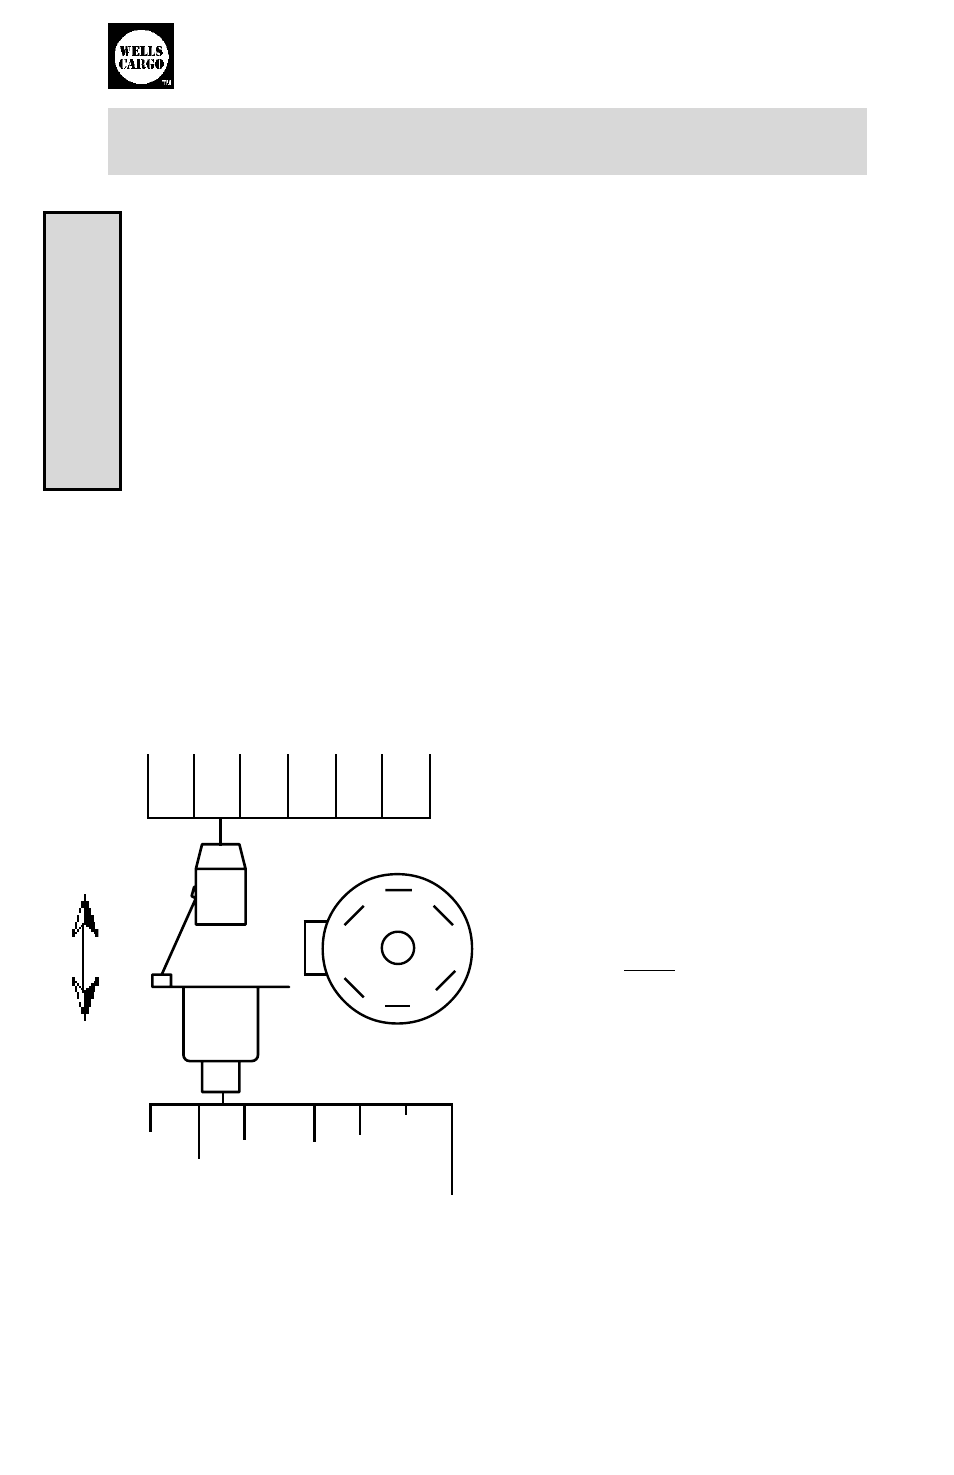 Wells cargo, Owner's manual, 12 volt wiring system | Wells Fargo Automobile  Accessories User Manual | Page 23 / 28Manuals Directory